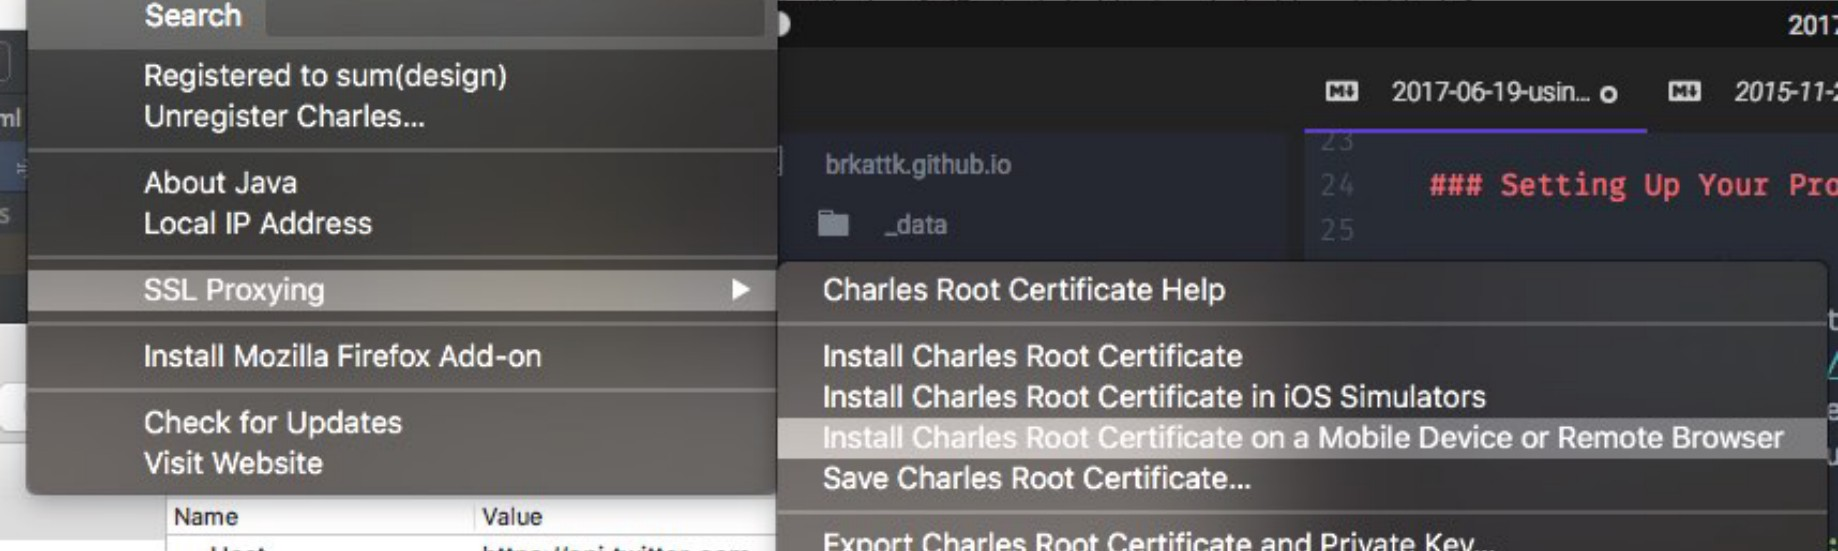 install charles root certificate windows 10